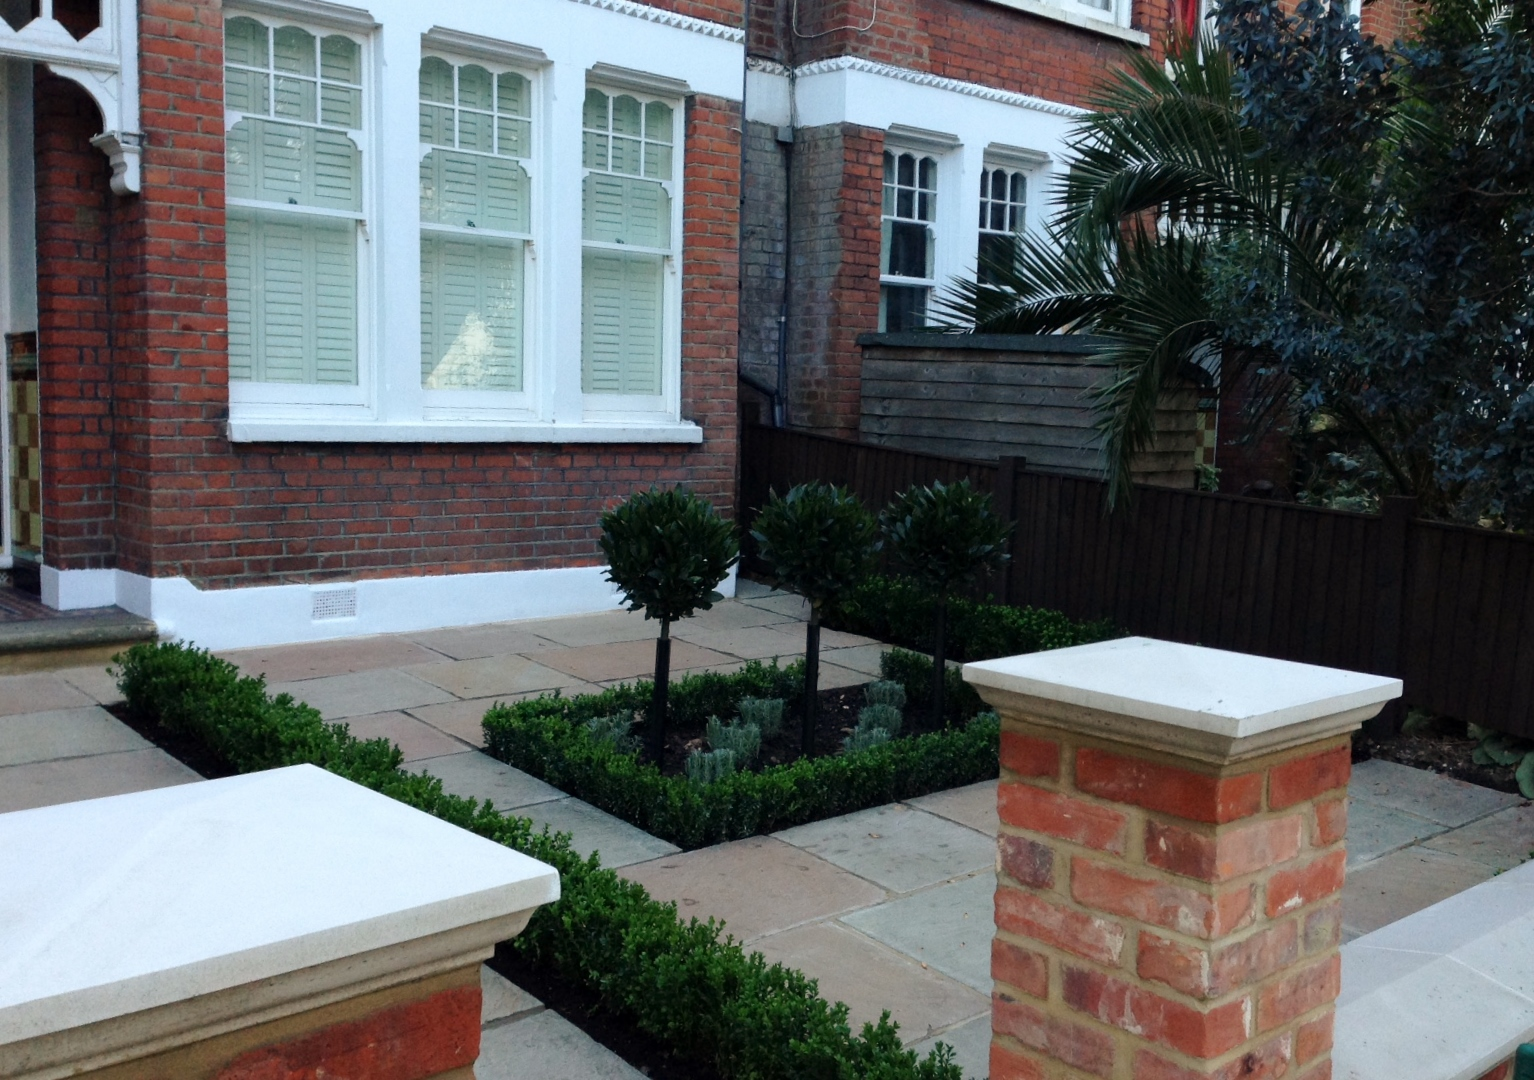 Imperial red brick London wall stone pier caps sandstone paving and formal topiary classic front garden Balham (9)